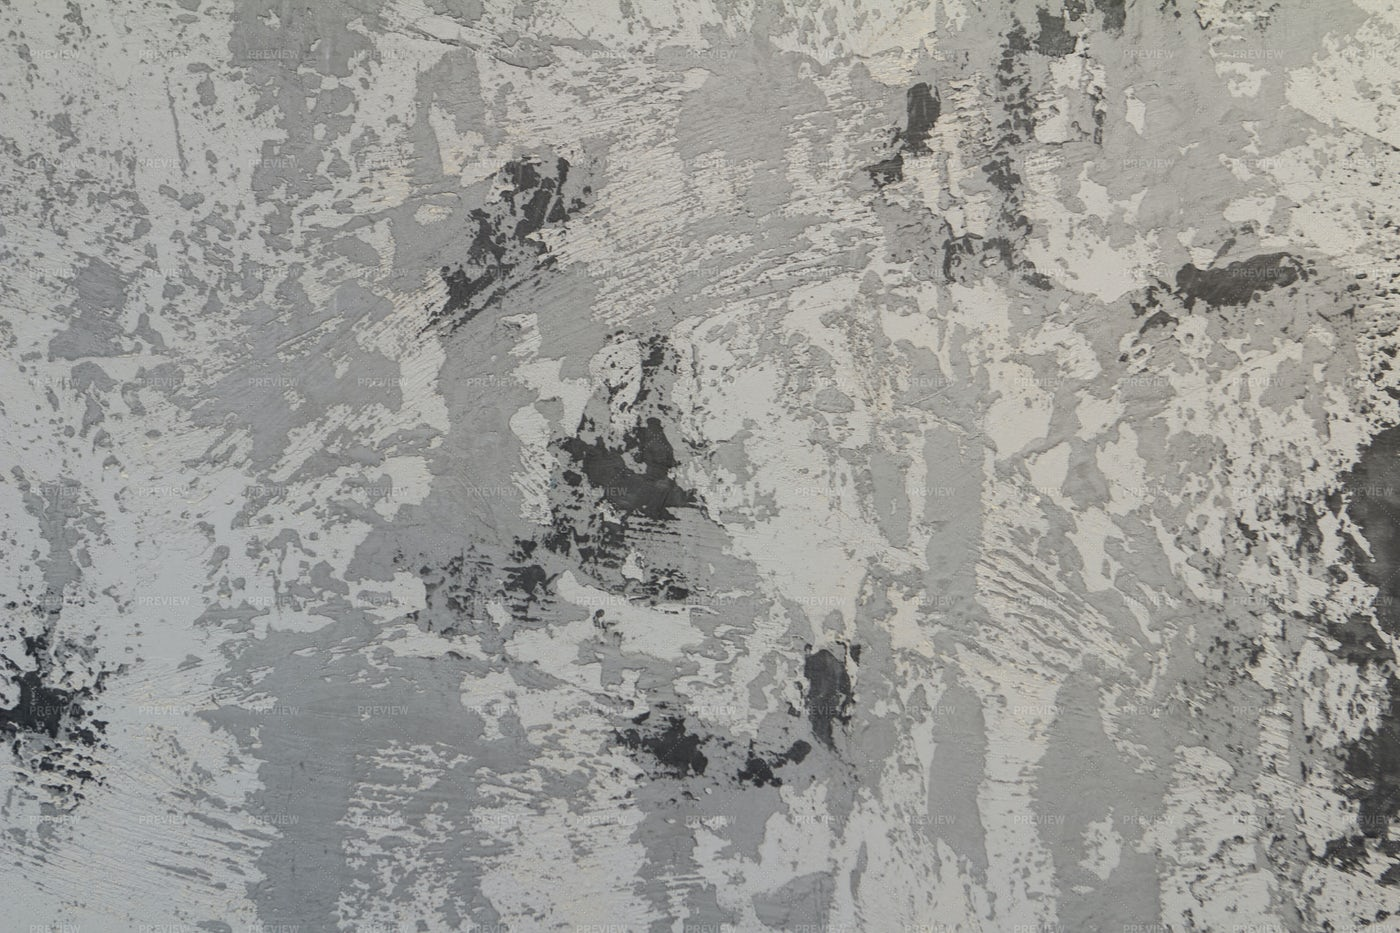 Black And White Cement Wall Concrete Bac: Stock Photos